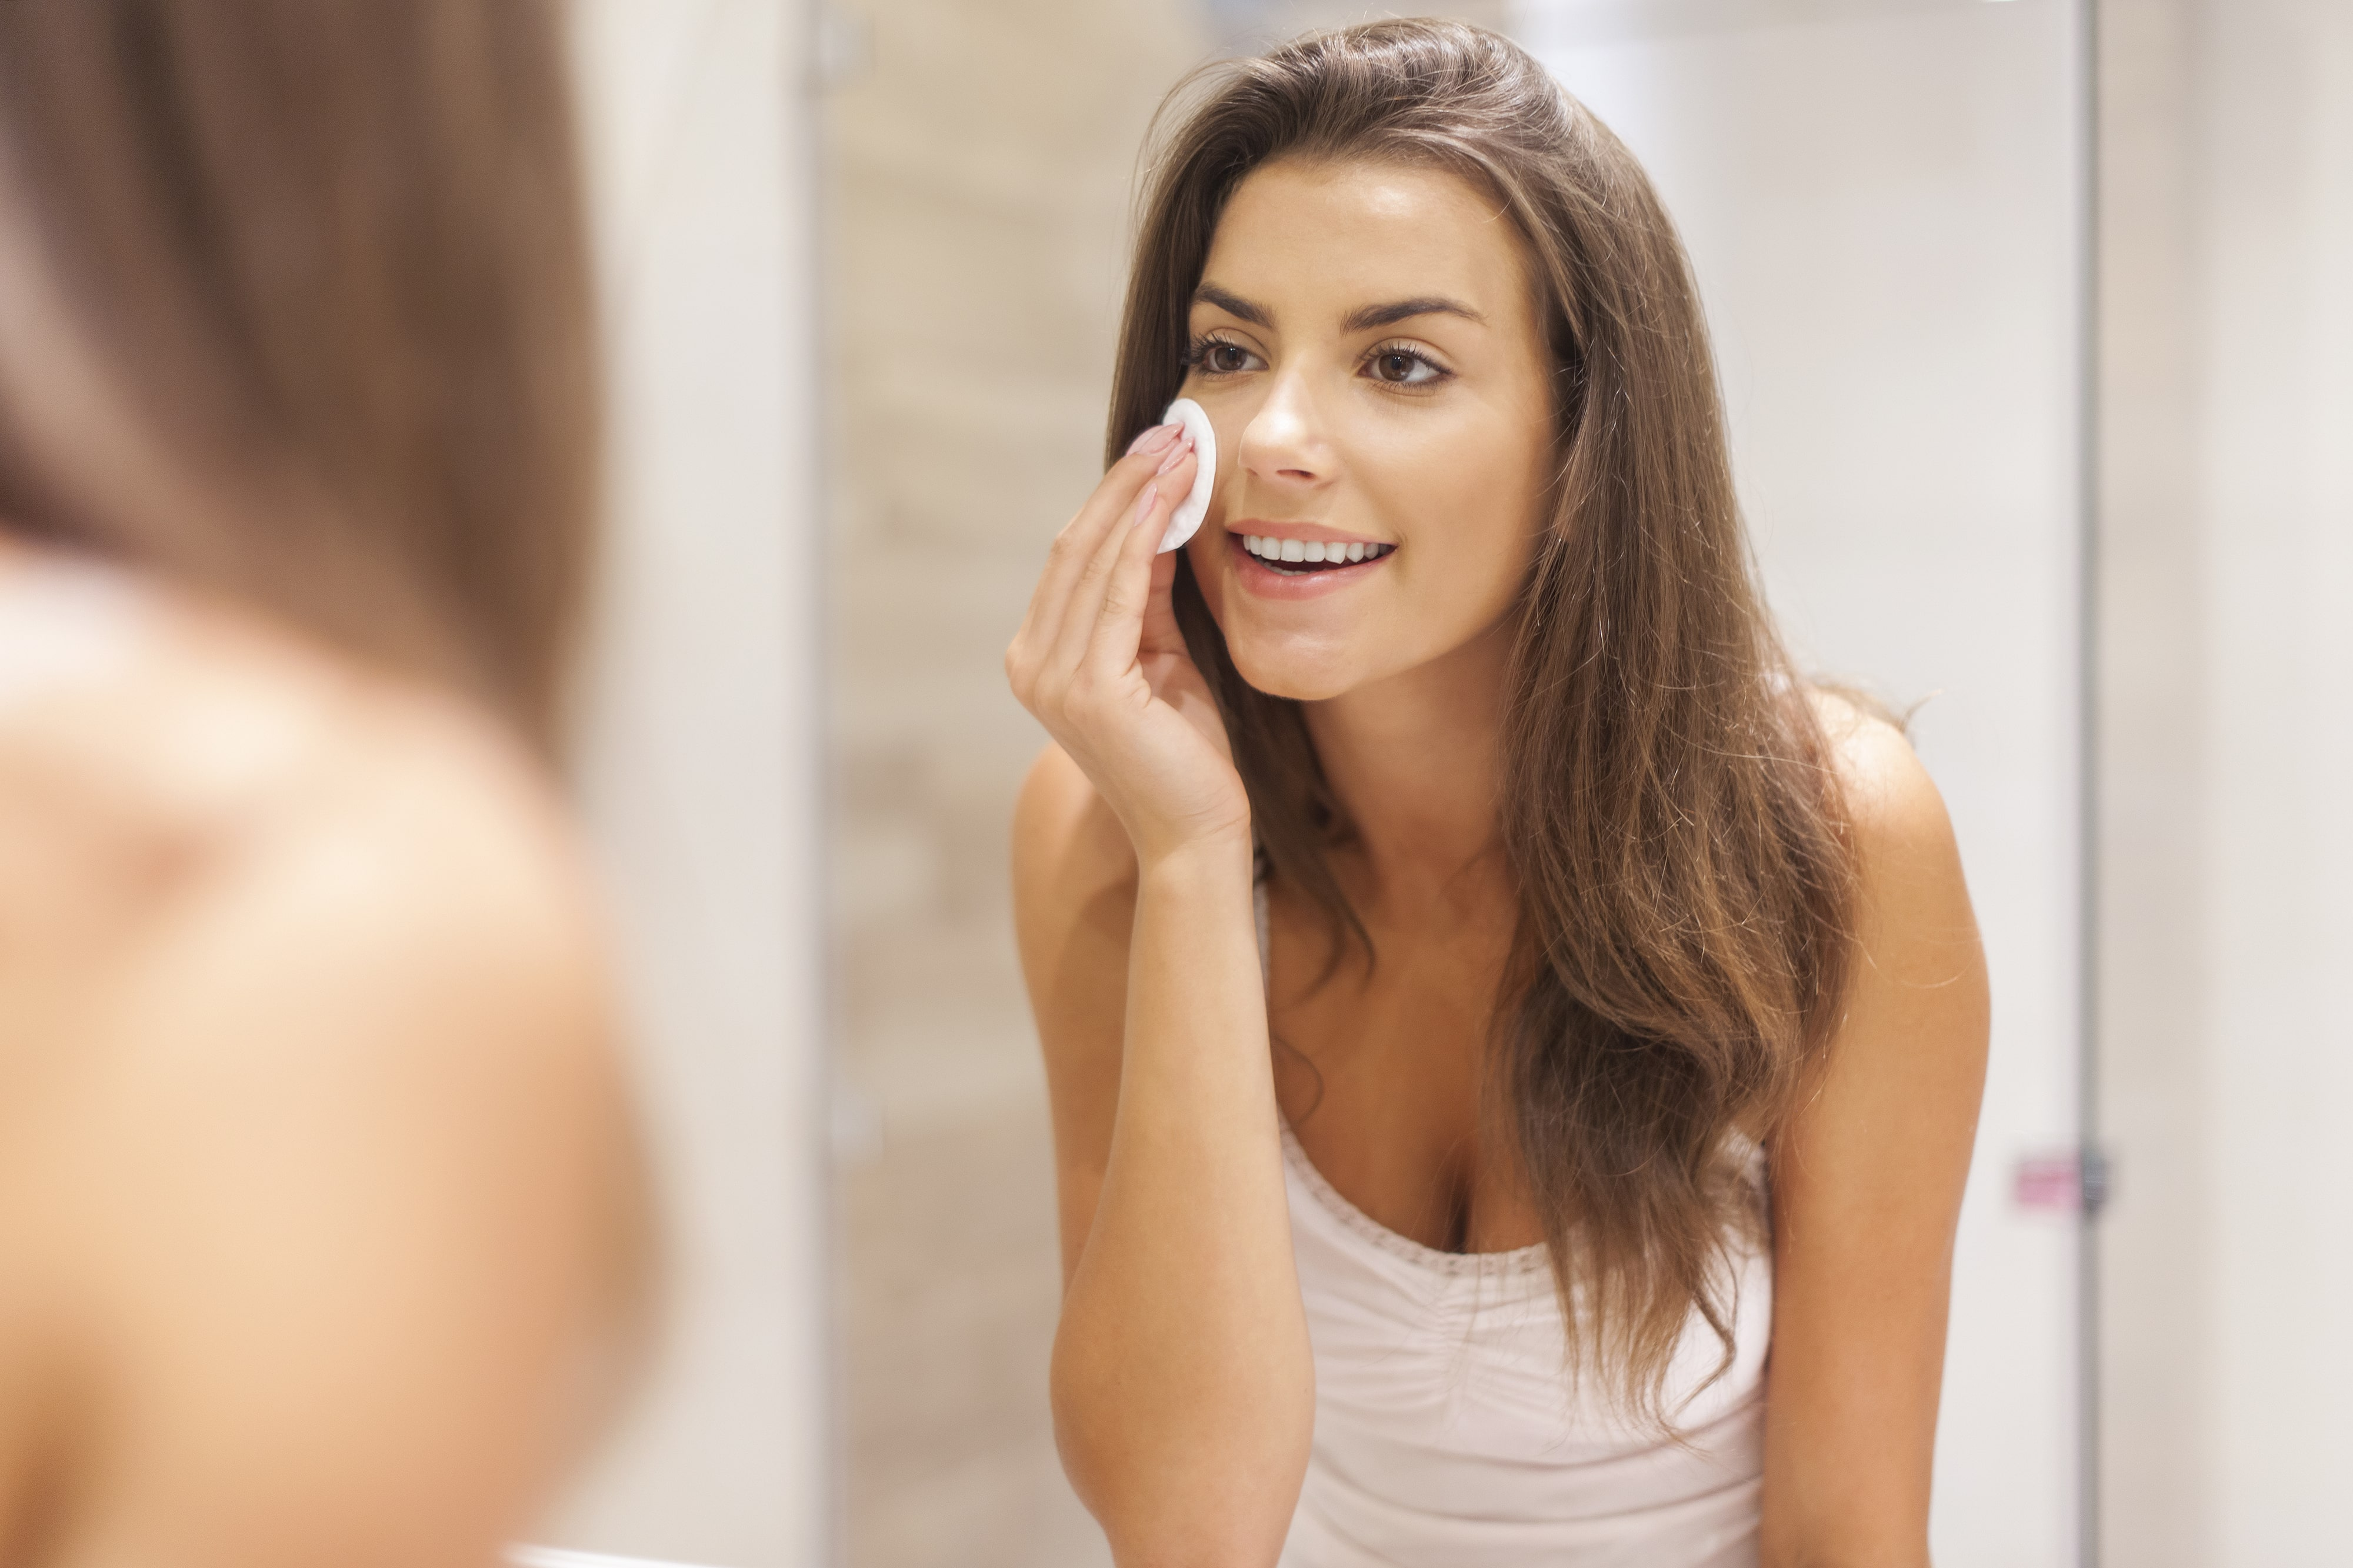 Woman cleaning her face in mirror